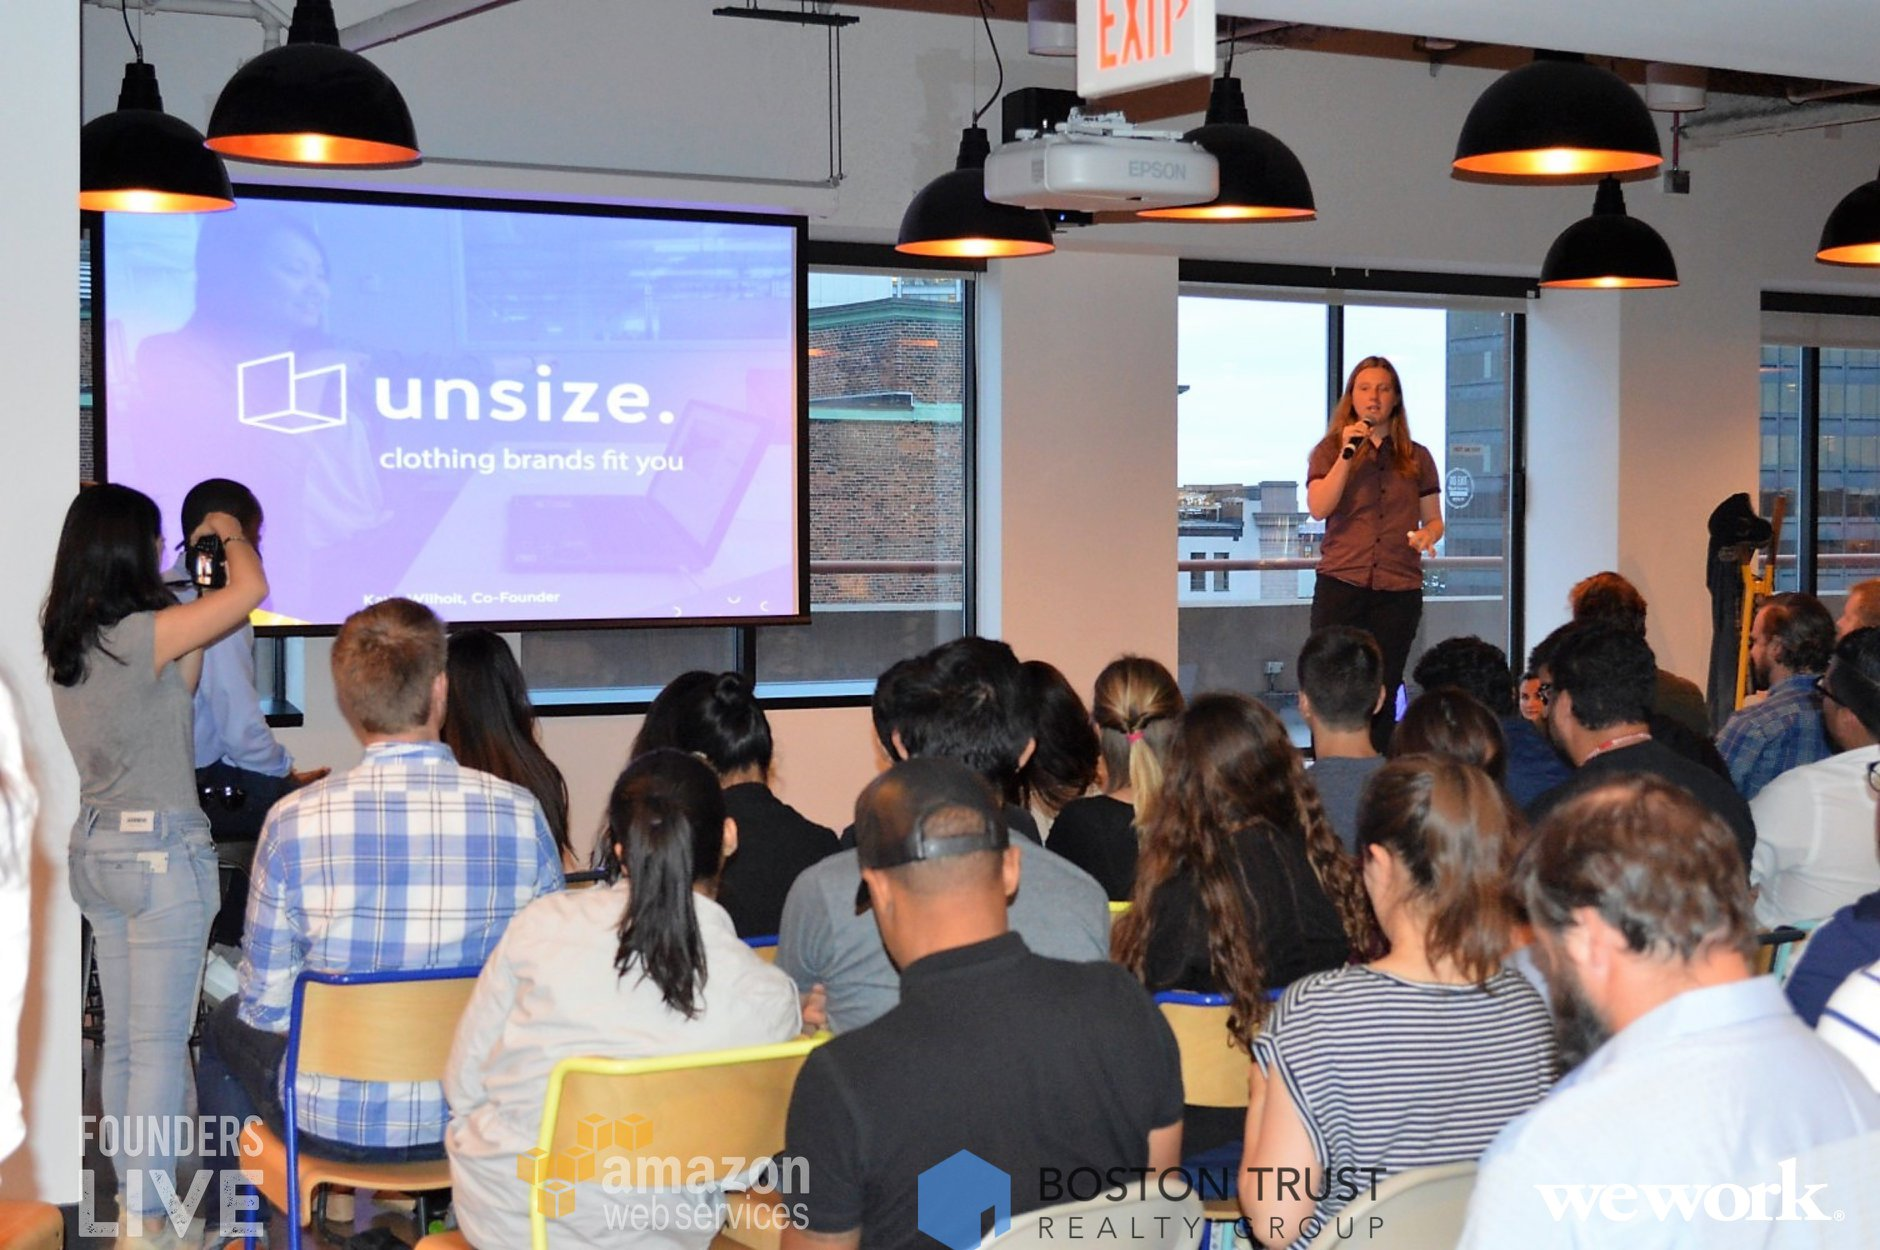 Founders Live Boston - Tech and Startup Pitch Event! - Boston Startups Guide